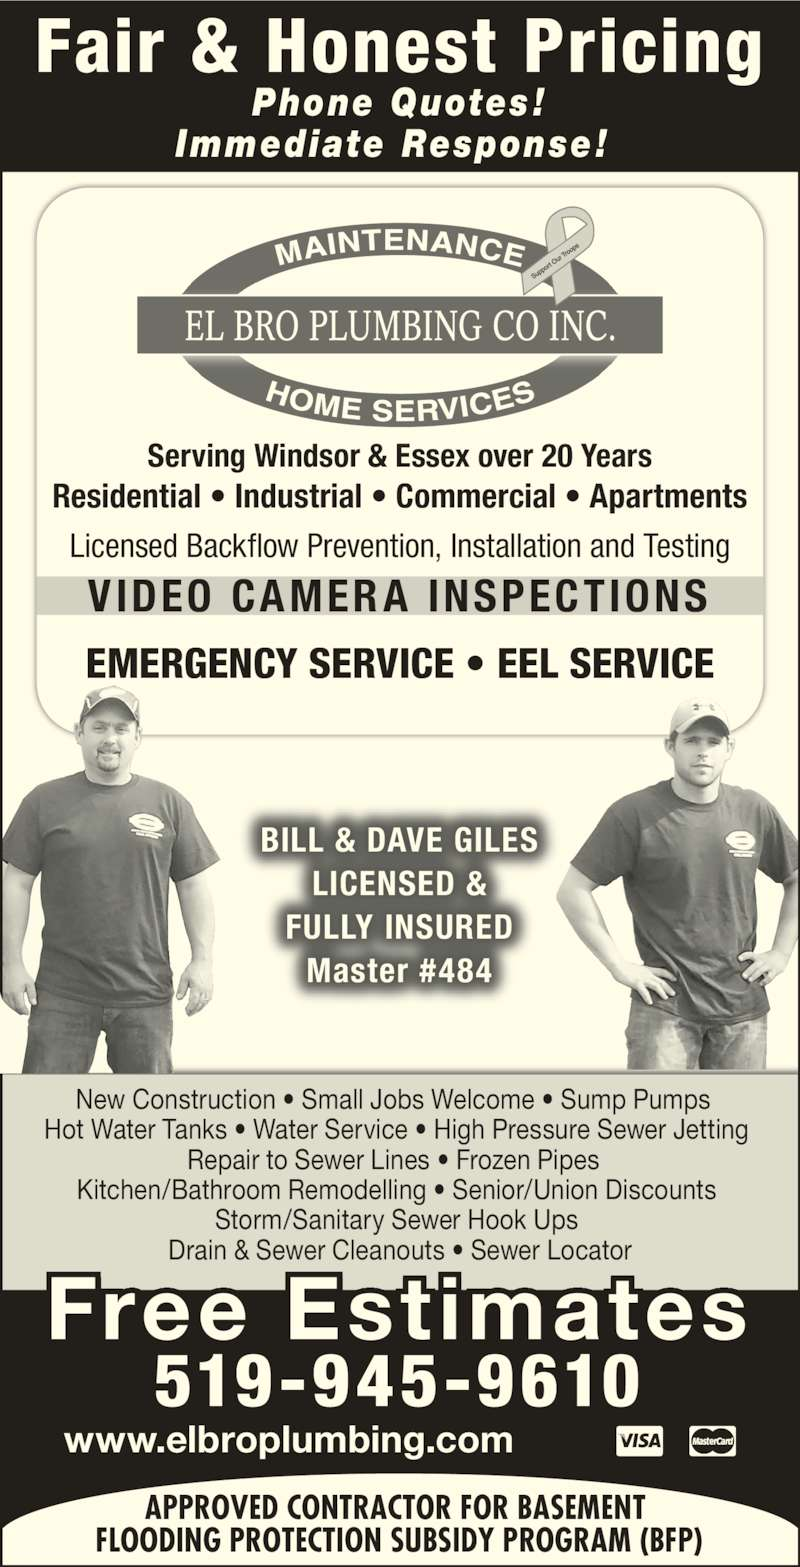 El Bro Plumbing (519-945-9610) - Display Ad - Serving Windsor & Essex over 20 Years Licensed Backflow Prevention, Installation and Testing EMERGENCY SERVICE • EEL SERVICE Phone Quotes ! Immediate Response!  VIDEO CAMER A INSPECTIONS Fair & Honest Pricing BILL & DAVE GILES LICENSED & FULLY INSURED Master #484 Residential • Industrial • Commercial • Apartments New Construction • Small Jobs Welcome • Sump Pumps    Hot Water Tanks • Water Service • High Pressure Sewer Jetting   Repair to Sewer Lines • Frozen Pipes   Kitchen/Bathroom Remodelling • Senior/Union Discounts  Storm/Sanitary Sewer Hook Ups  Drain & Sewer Cleanouts • Sewer Locator www.elbroplumbing.com Free Estimates 519-945-9610 APPROVED CONTRACTOR FOR BASEMENT  FLOODING PROTECTION SUBSIDY PROGRAM (BFP)